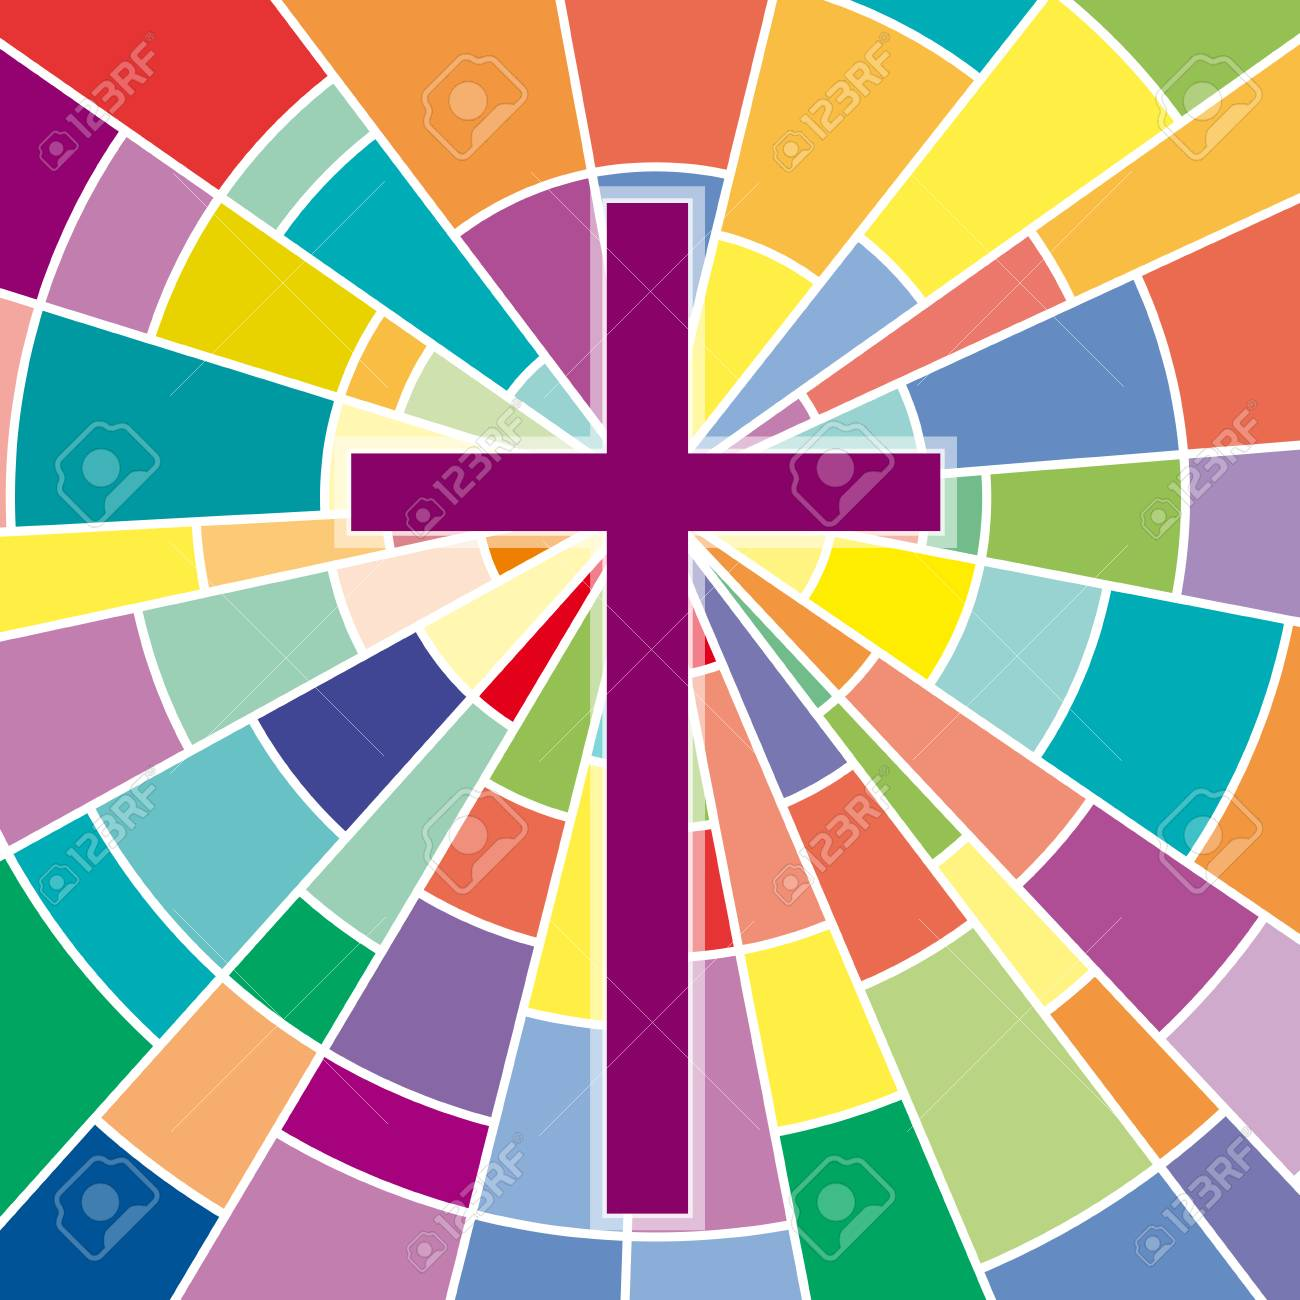 Abstract crucifix, rood on colored glass - 84363209